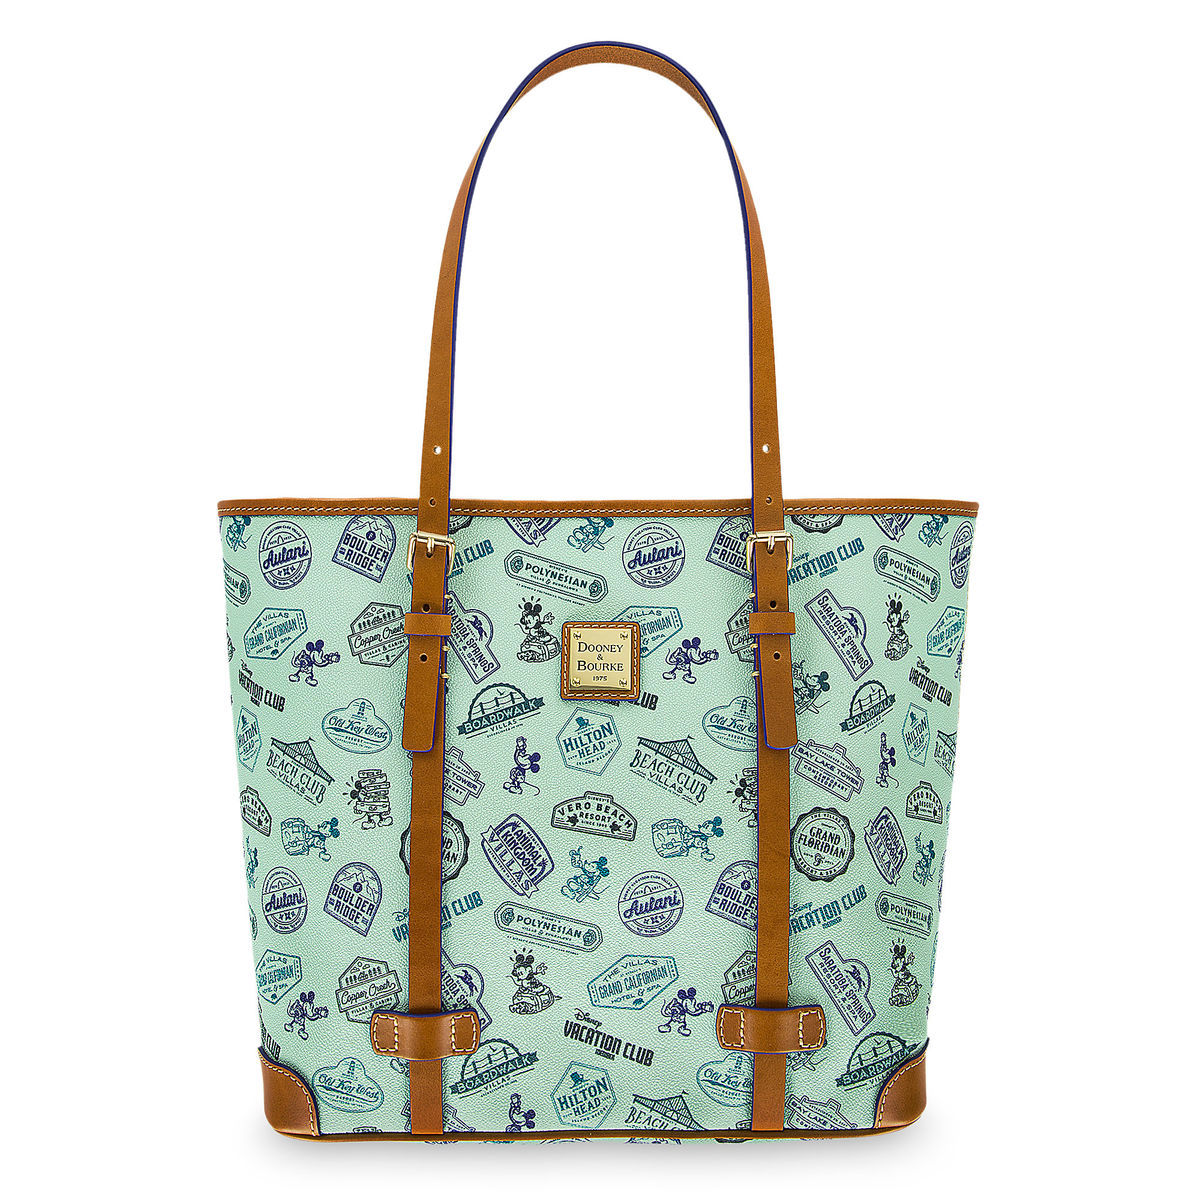 dooney and bourke bags